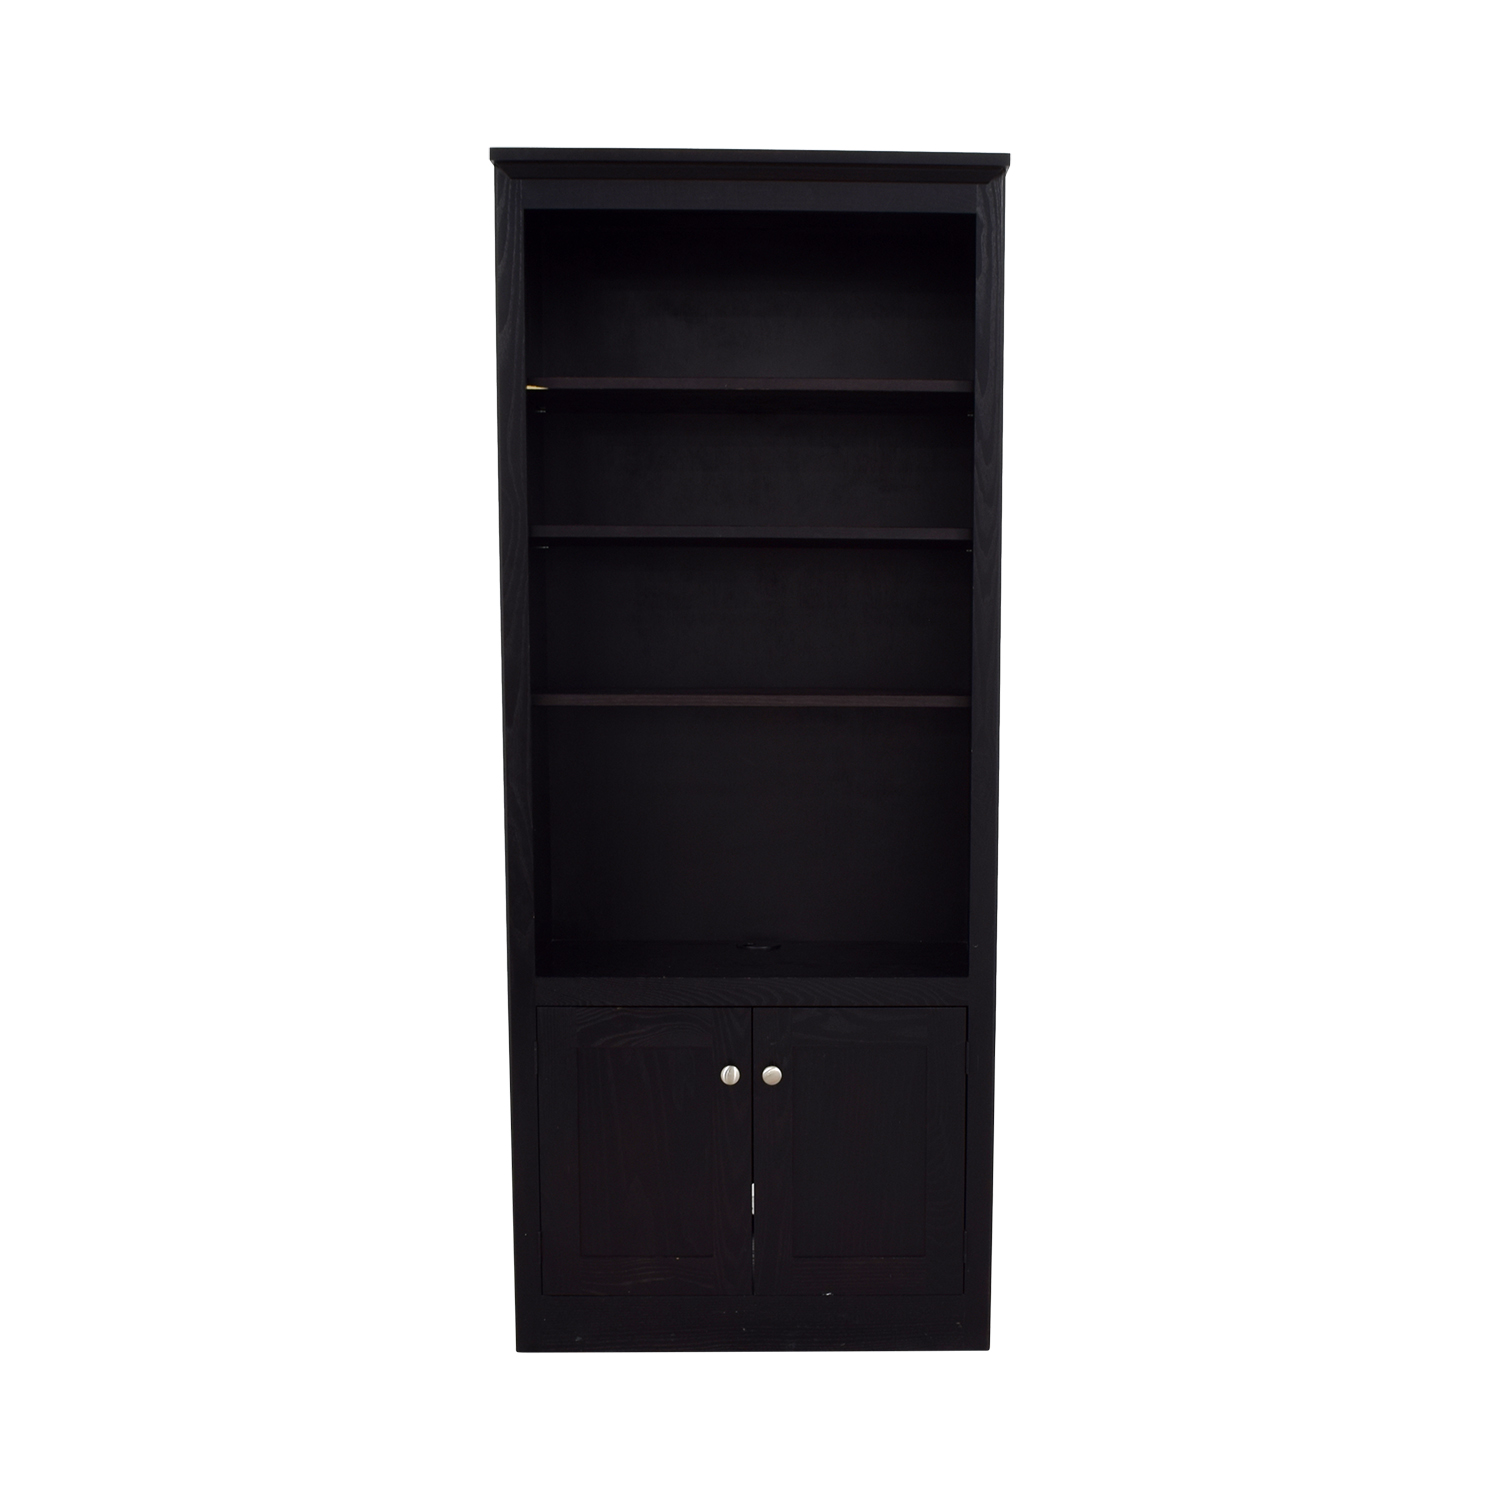 Pottery Barn Pottery Barn Espresso Bookshelf with Cabinet second hand